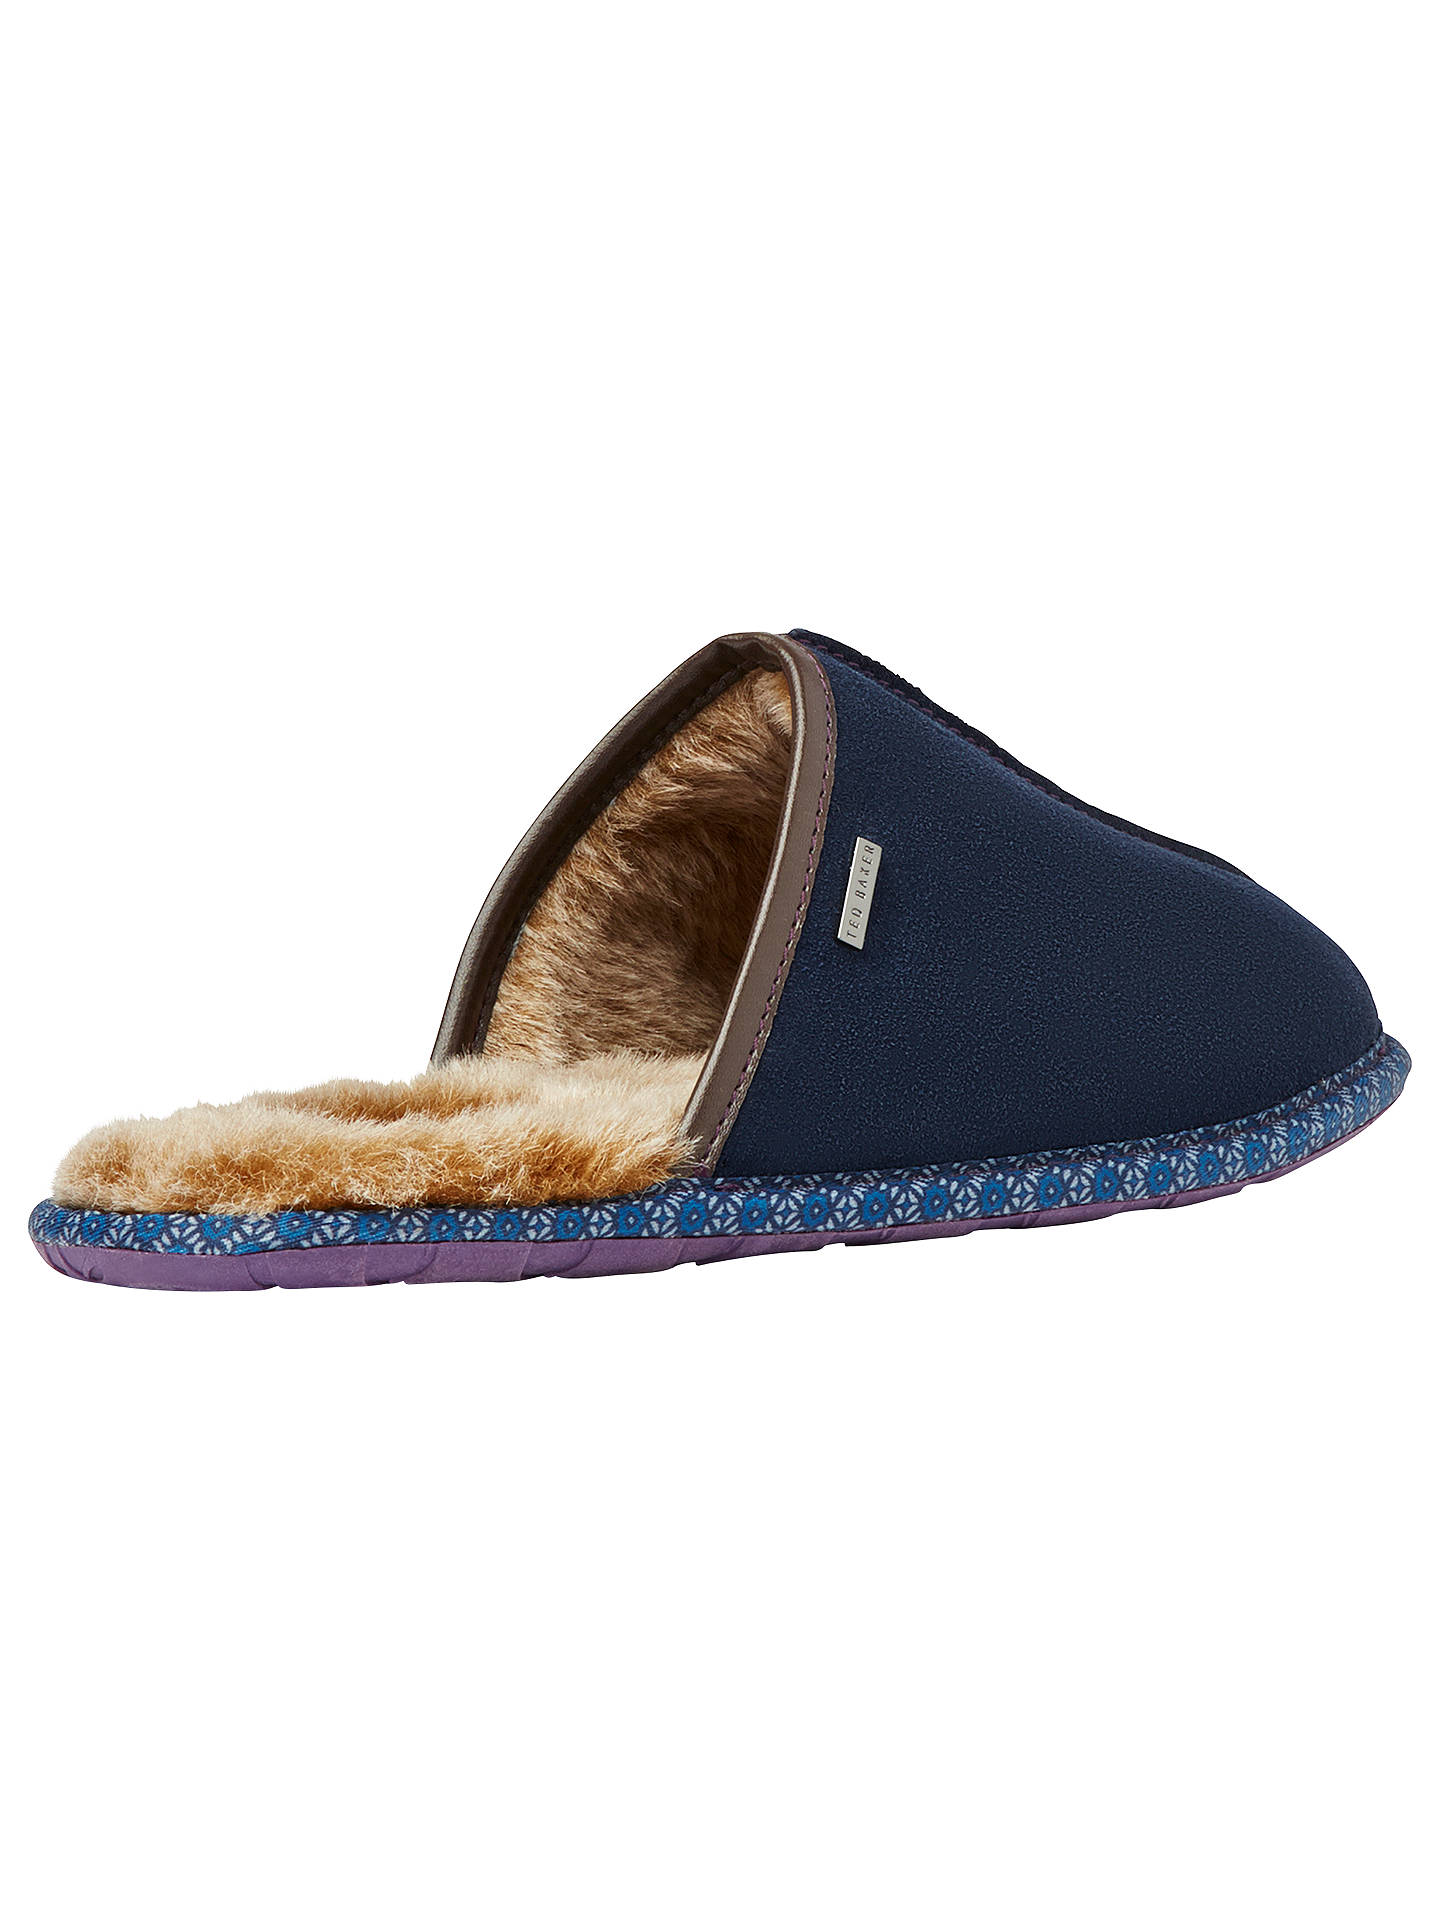 BuyTed Baker Youngi Slippers, Dark Blue, 7 Online at johnlewis.com